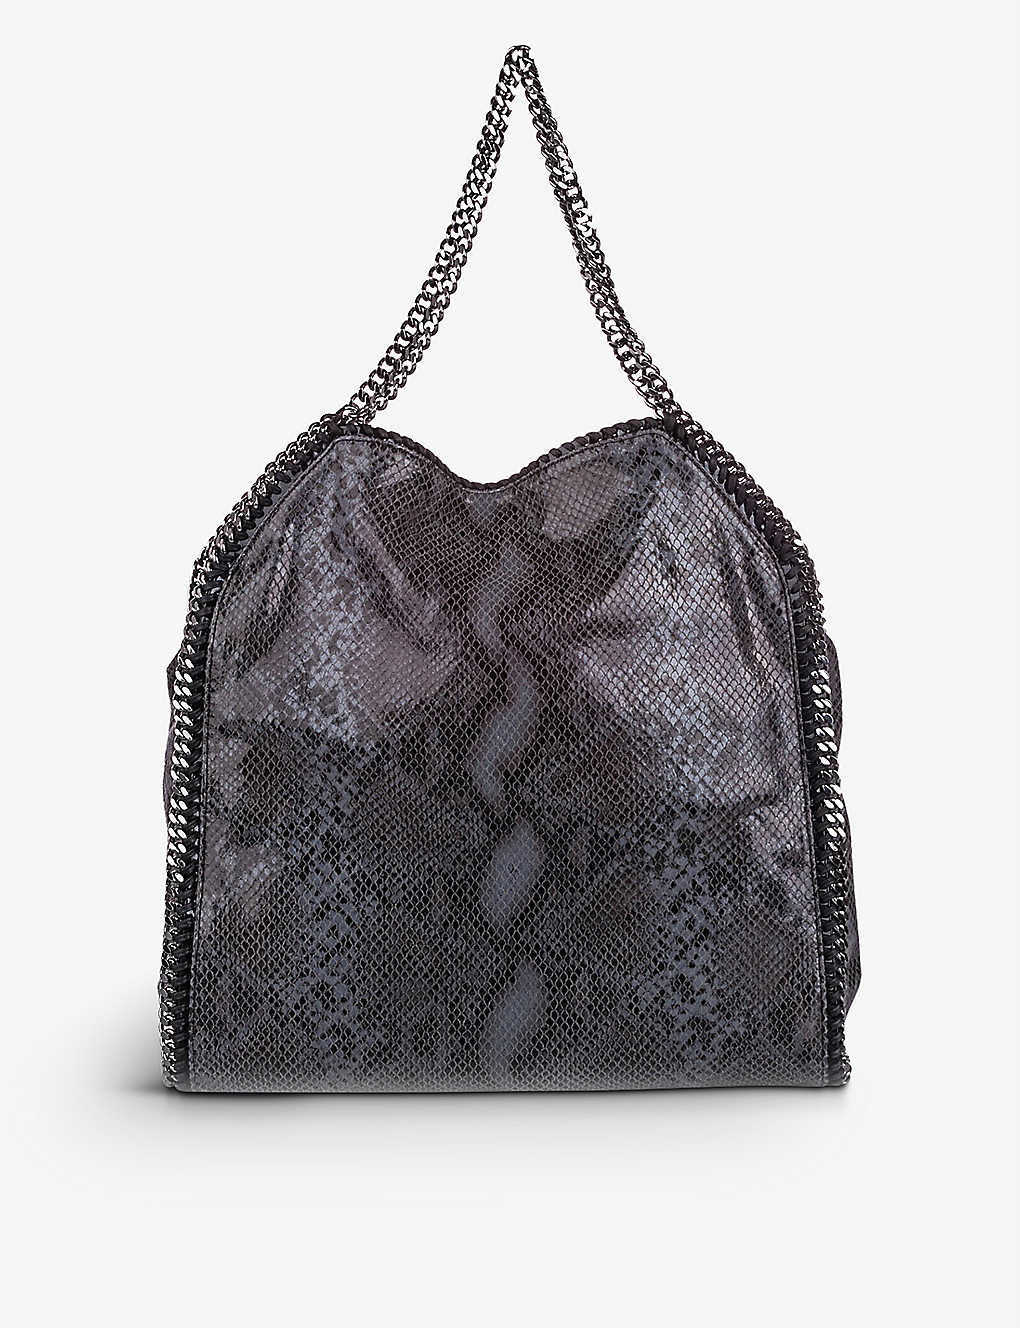 RESELLFRIDGES: Pre-loved Stella McCartney snake-print faux-leather tote bag